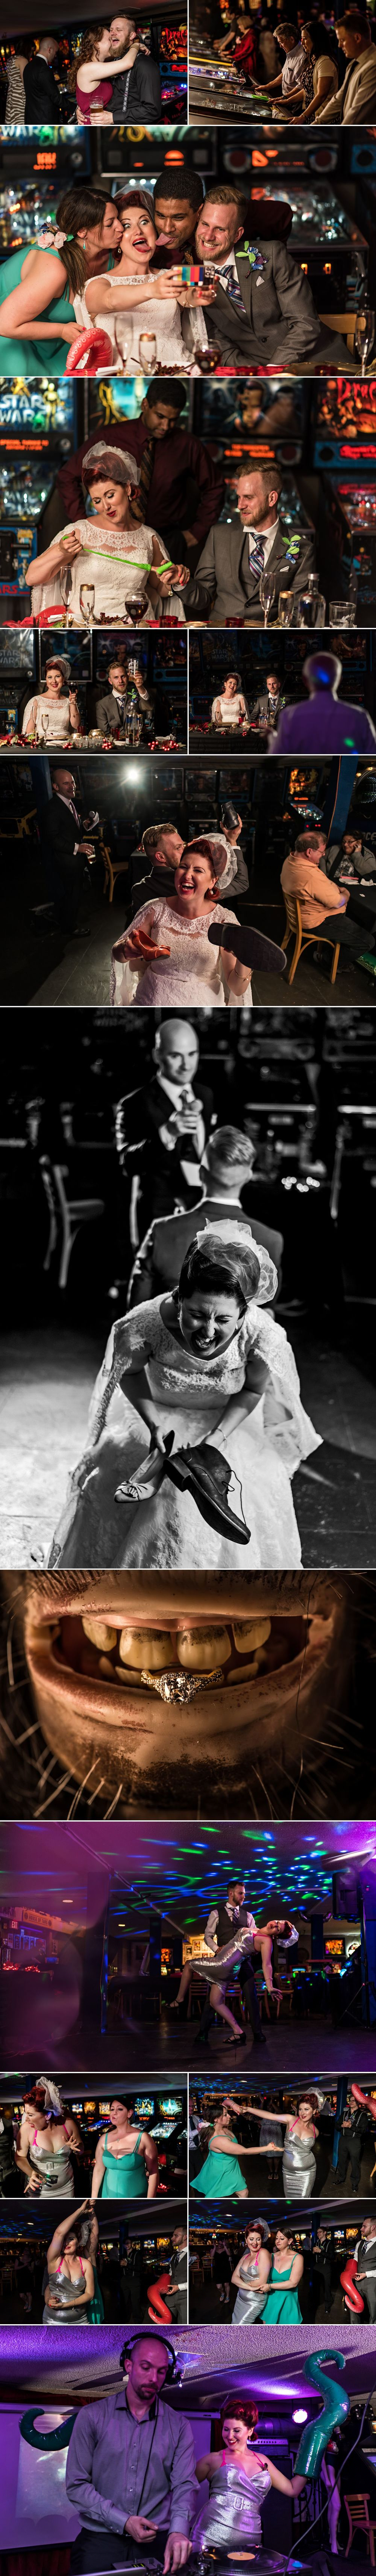 candid moments at a wedding reception at the house of targ in ottawa